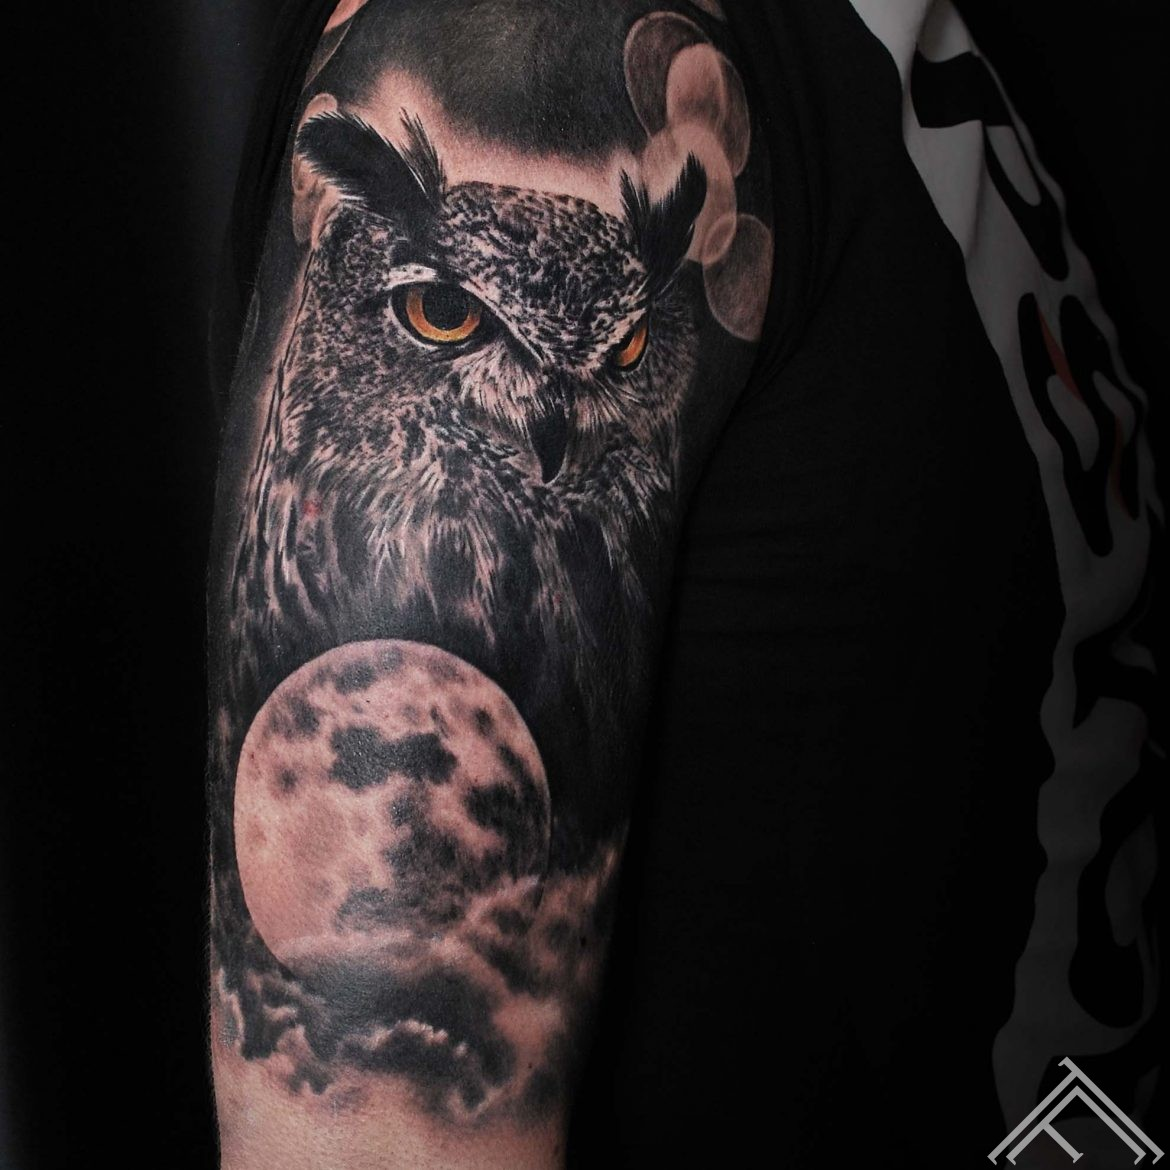 owl-moon-puce-menesis-tattoo-tetovejums-tattoofrequency-riga-art-andersontattoo